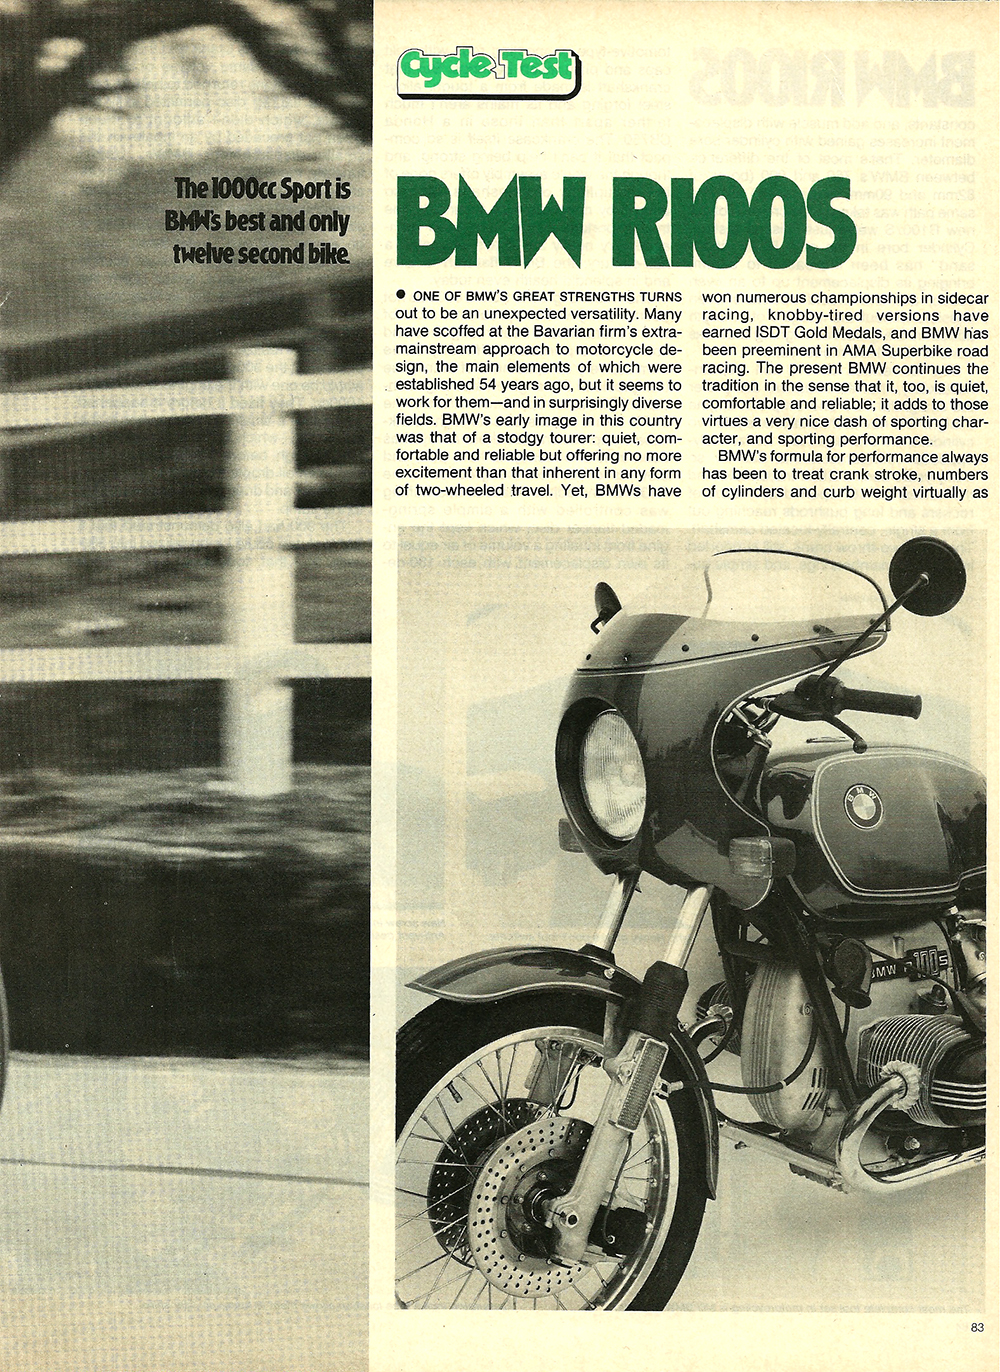 1977 BMW R100S road test 2.jpg